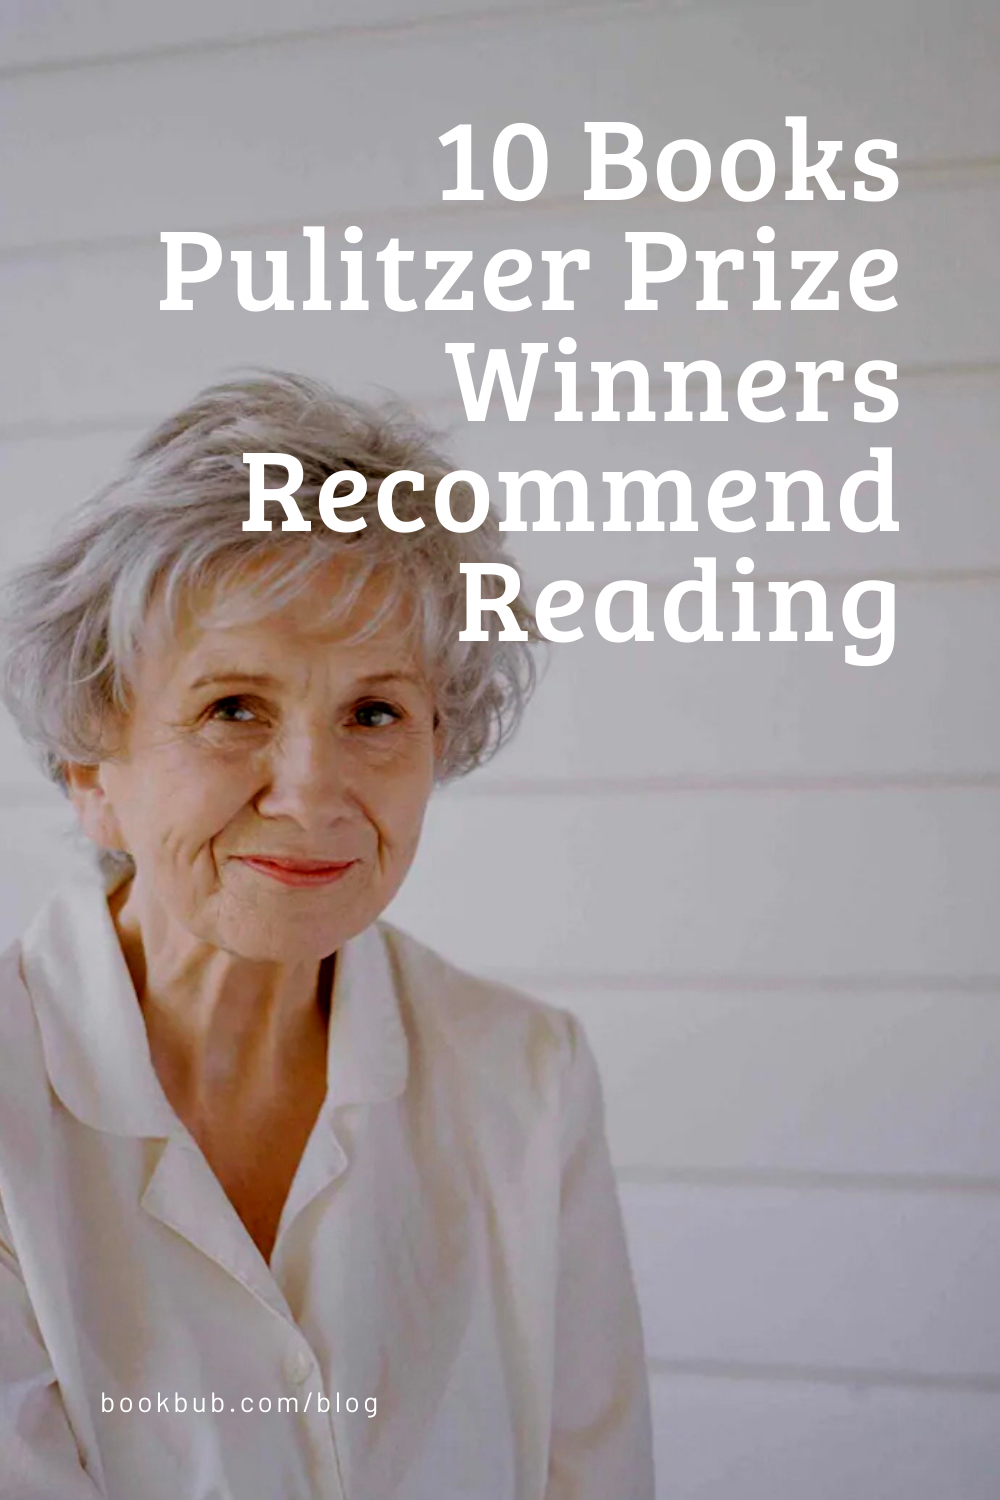 10 books to read in your 20s, according to Pulitzer Prize–winning writers.  #books #pulitzer #booksworthreading